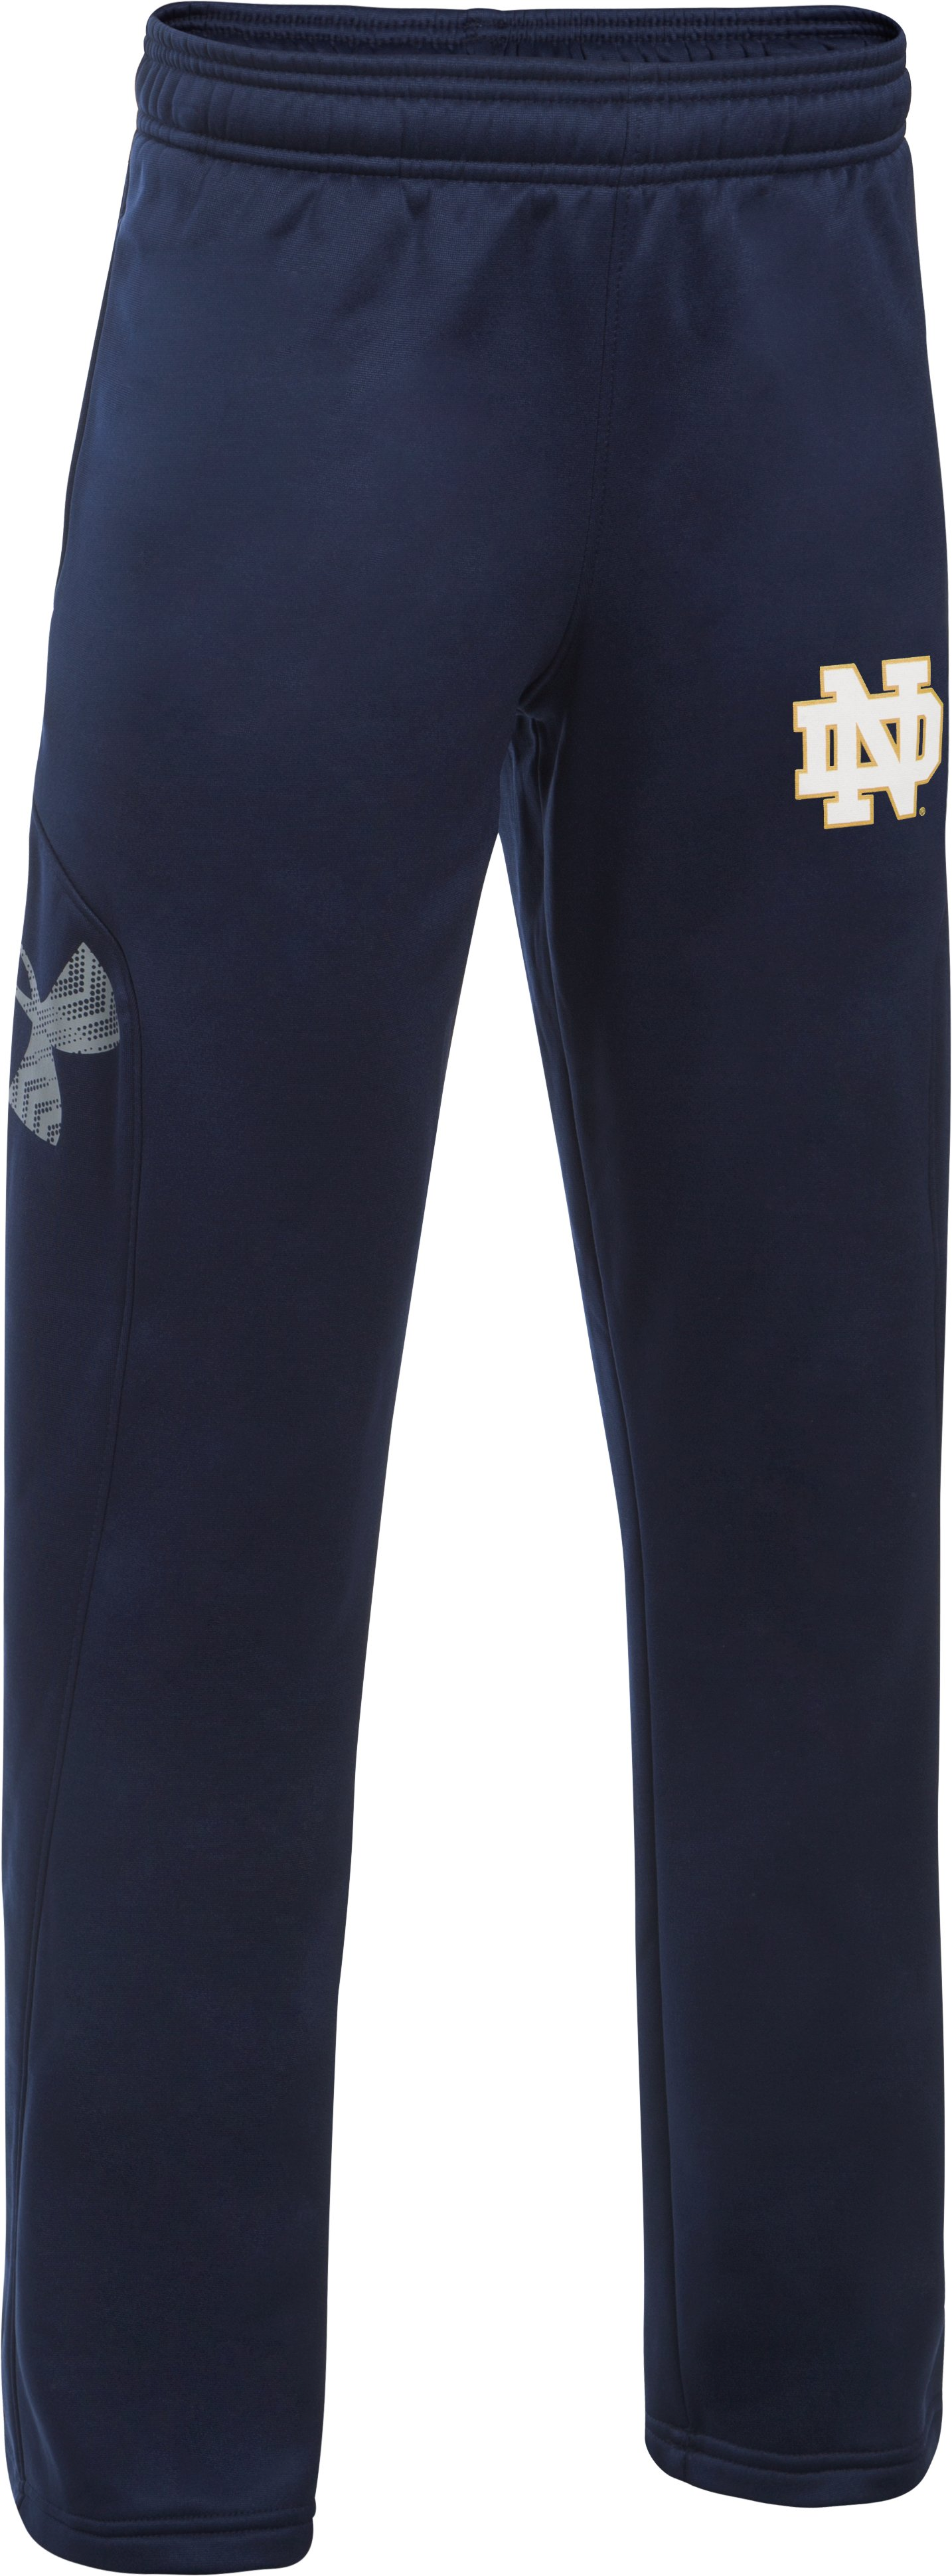 Boys' Notre Dame UA Big Logo Pants, Midnight Navy